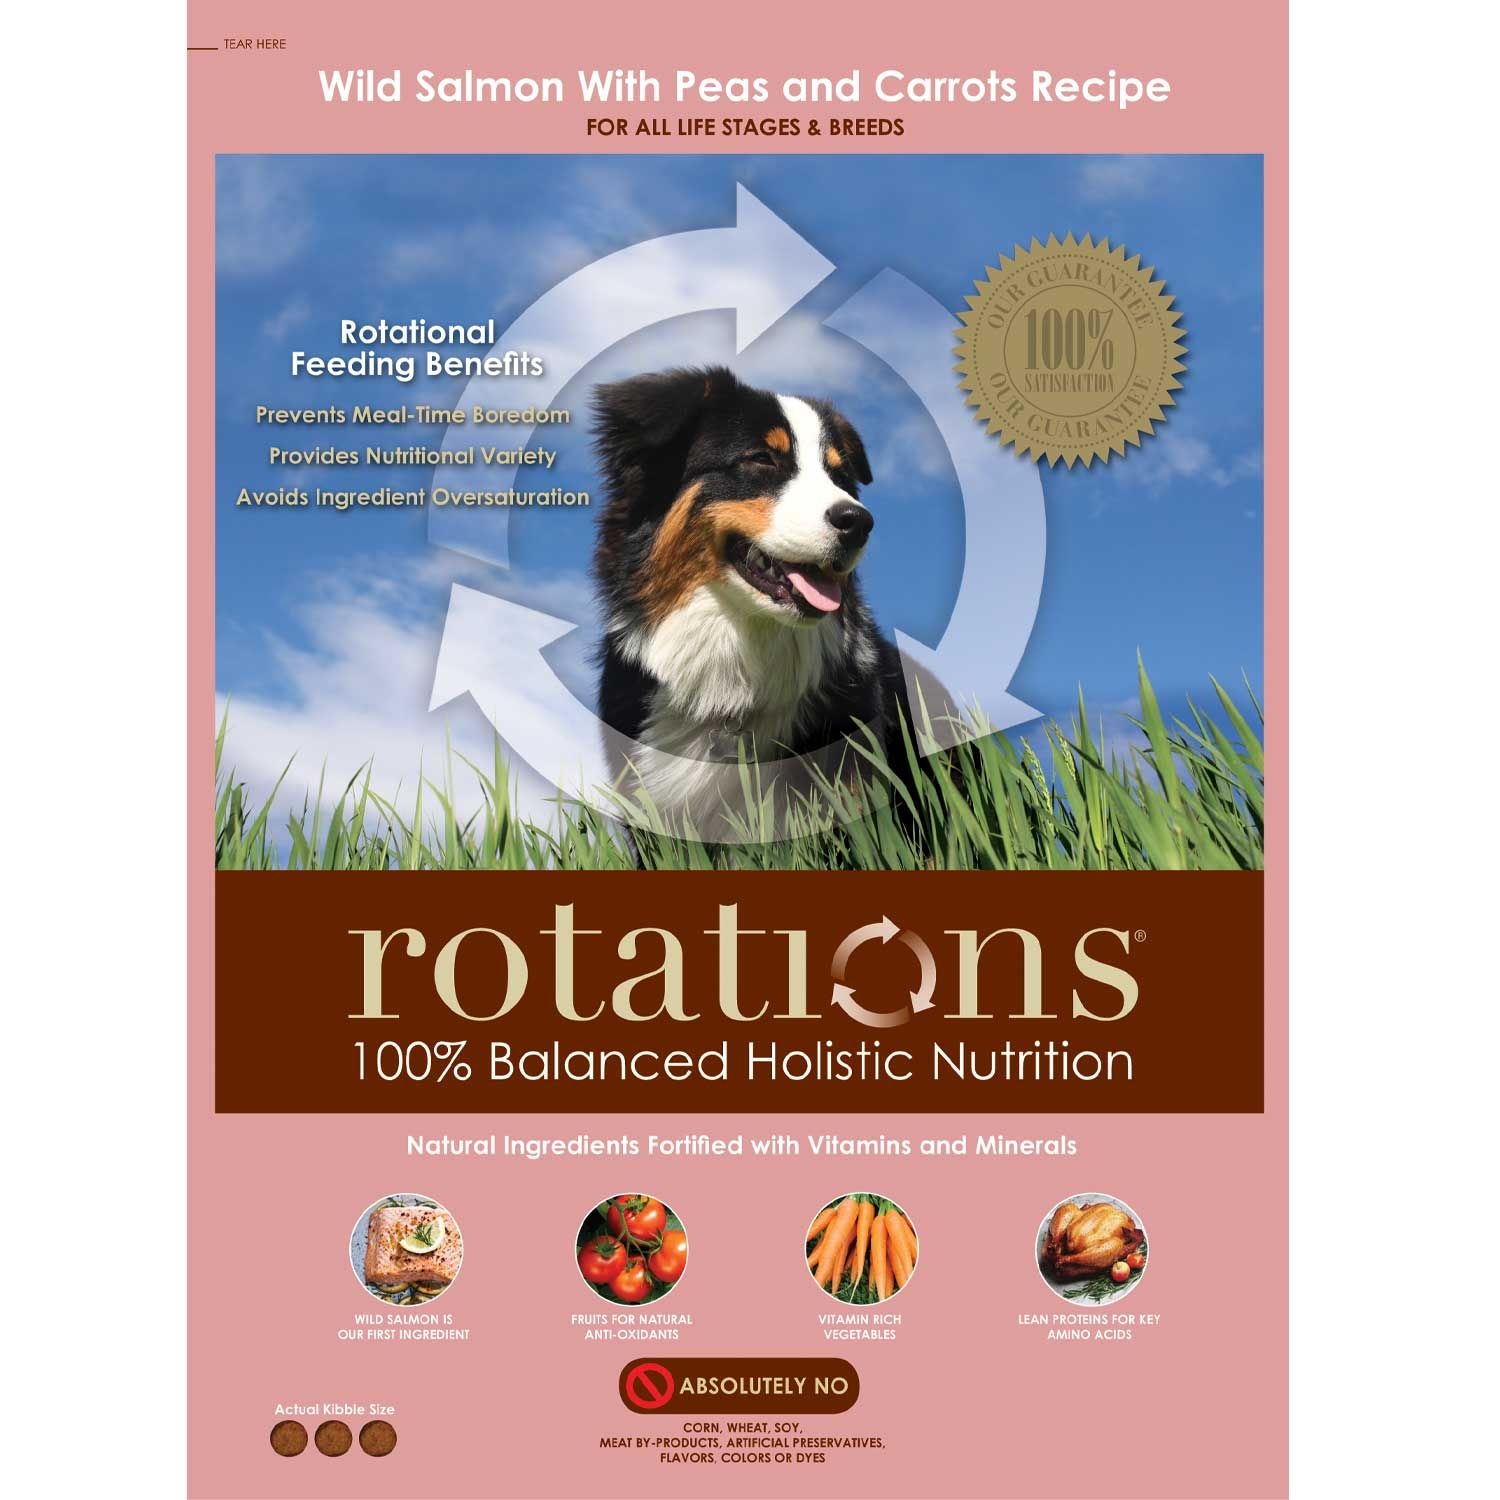 ROTATIONS Dry Dog Food at PETCO (With images) Dog food